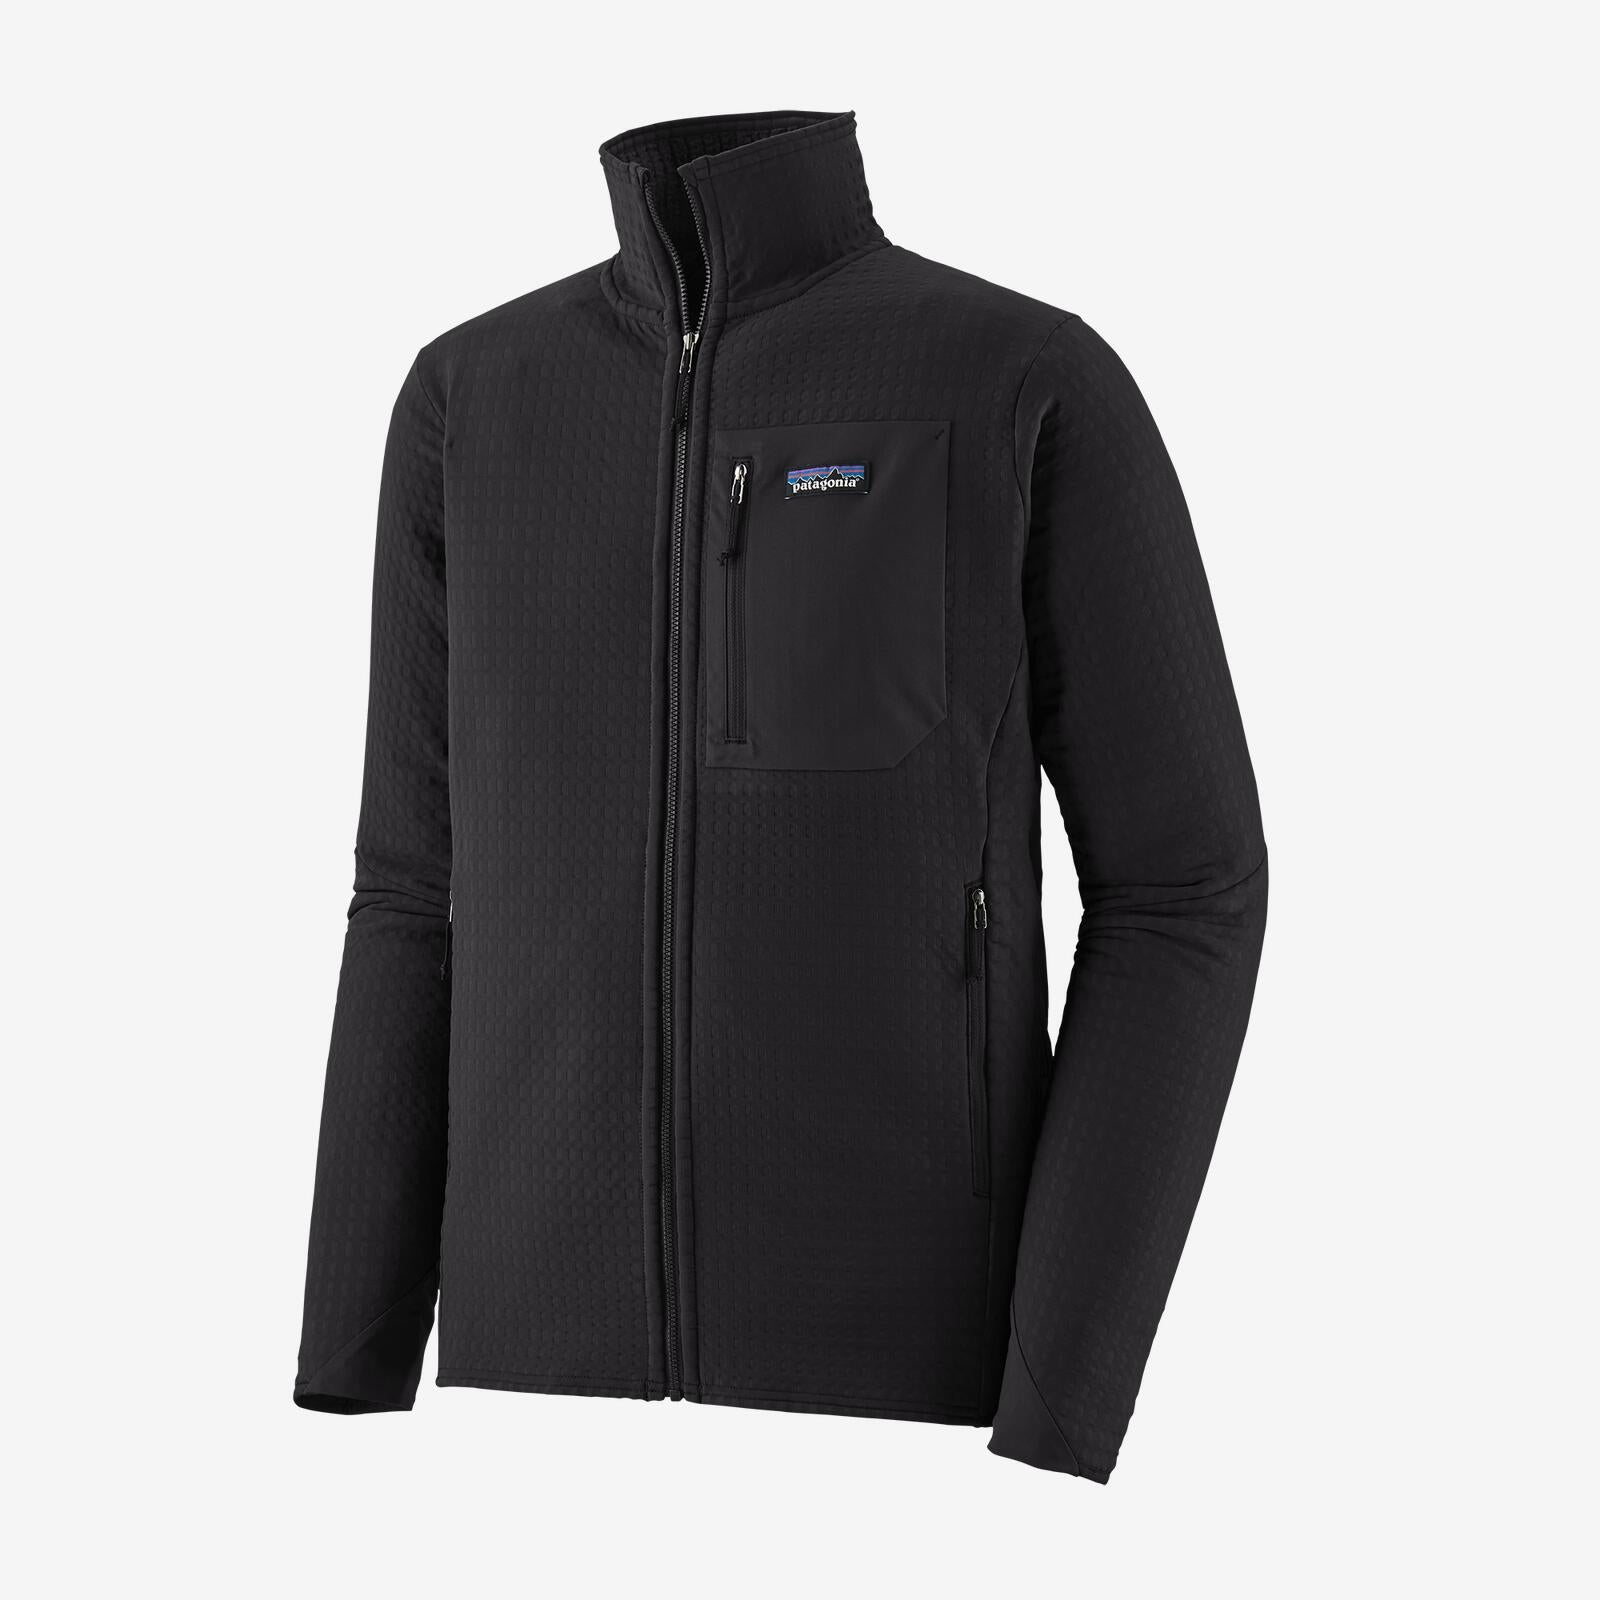 Patagonia R2 TechFace Jacket